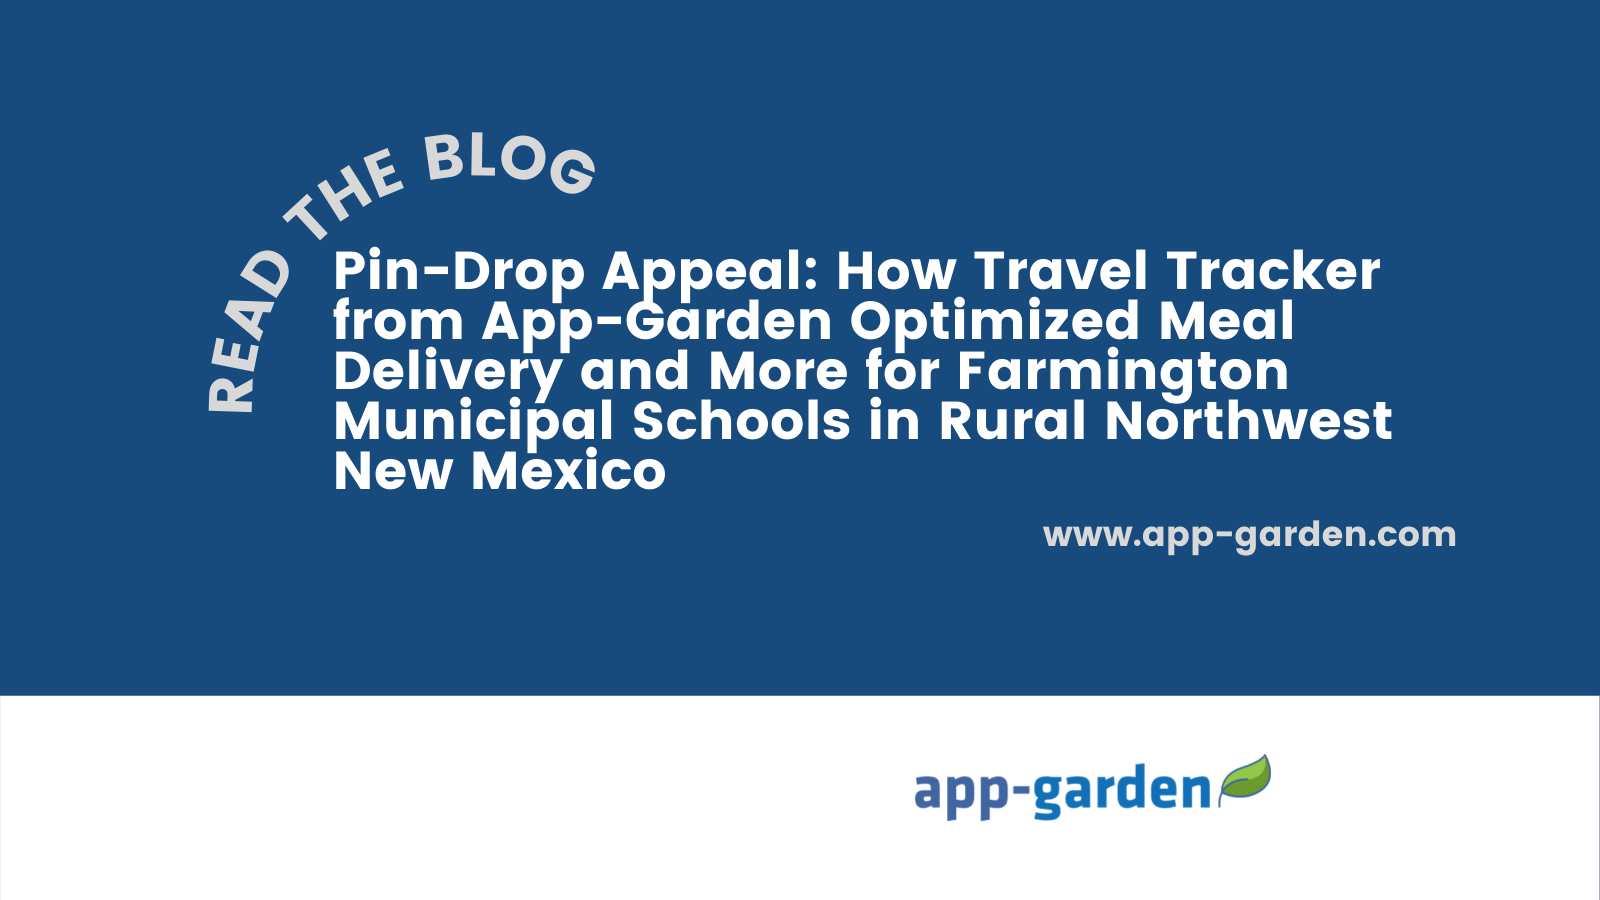 Pin-Drop Appeal: How Travel Tracker from App-Garden Optimized Meal Delivery and More for Farmington Municipal Schools in Rural Northwest New Mexico